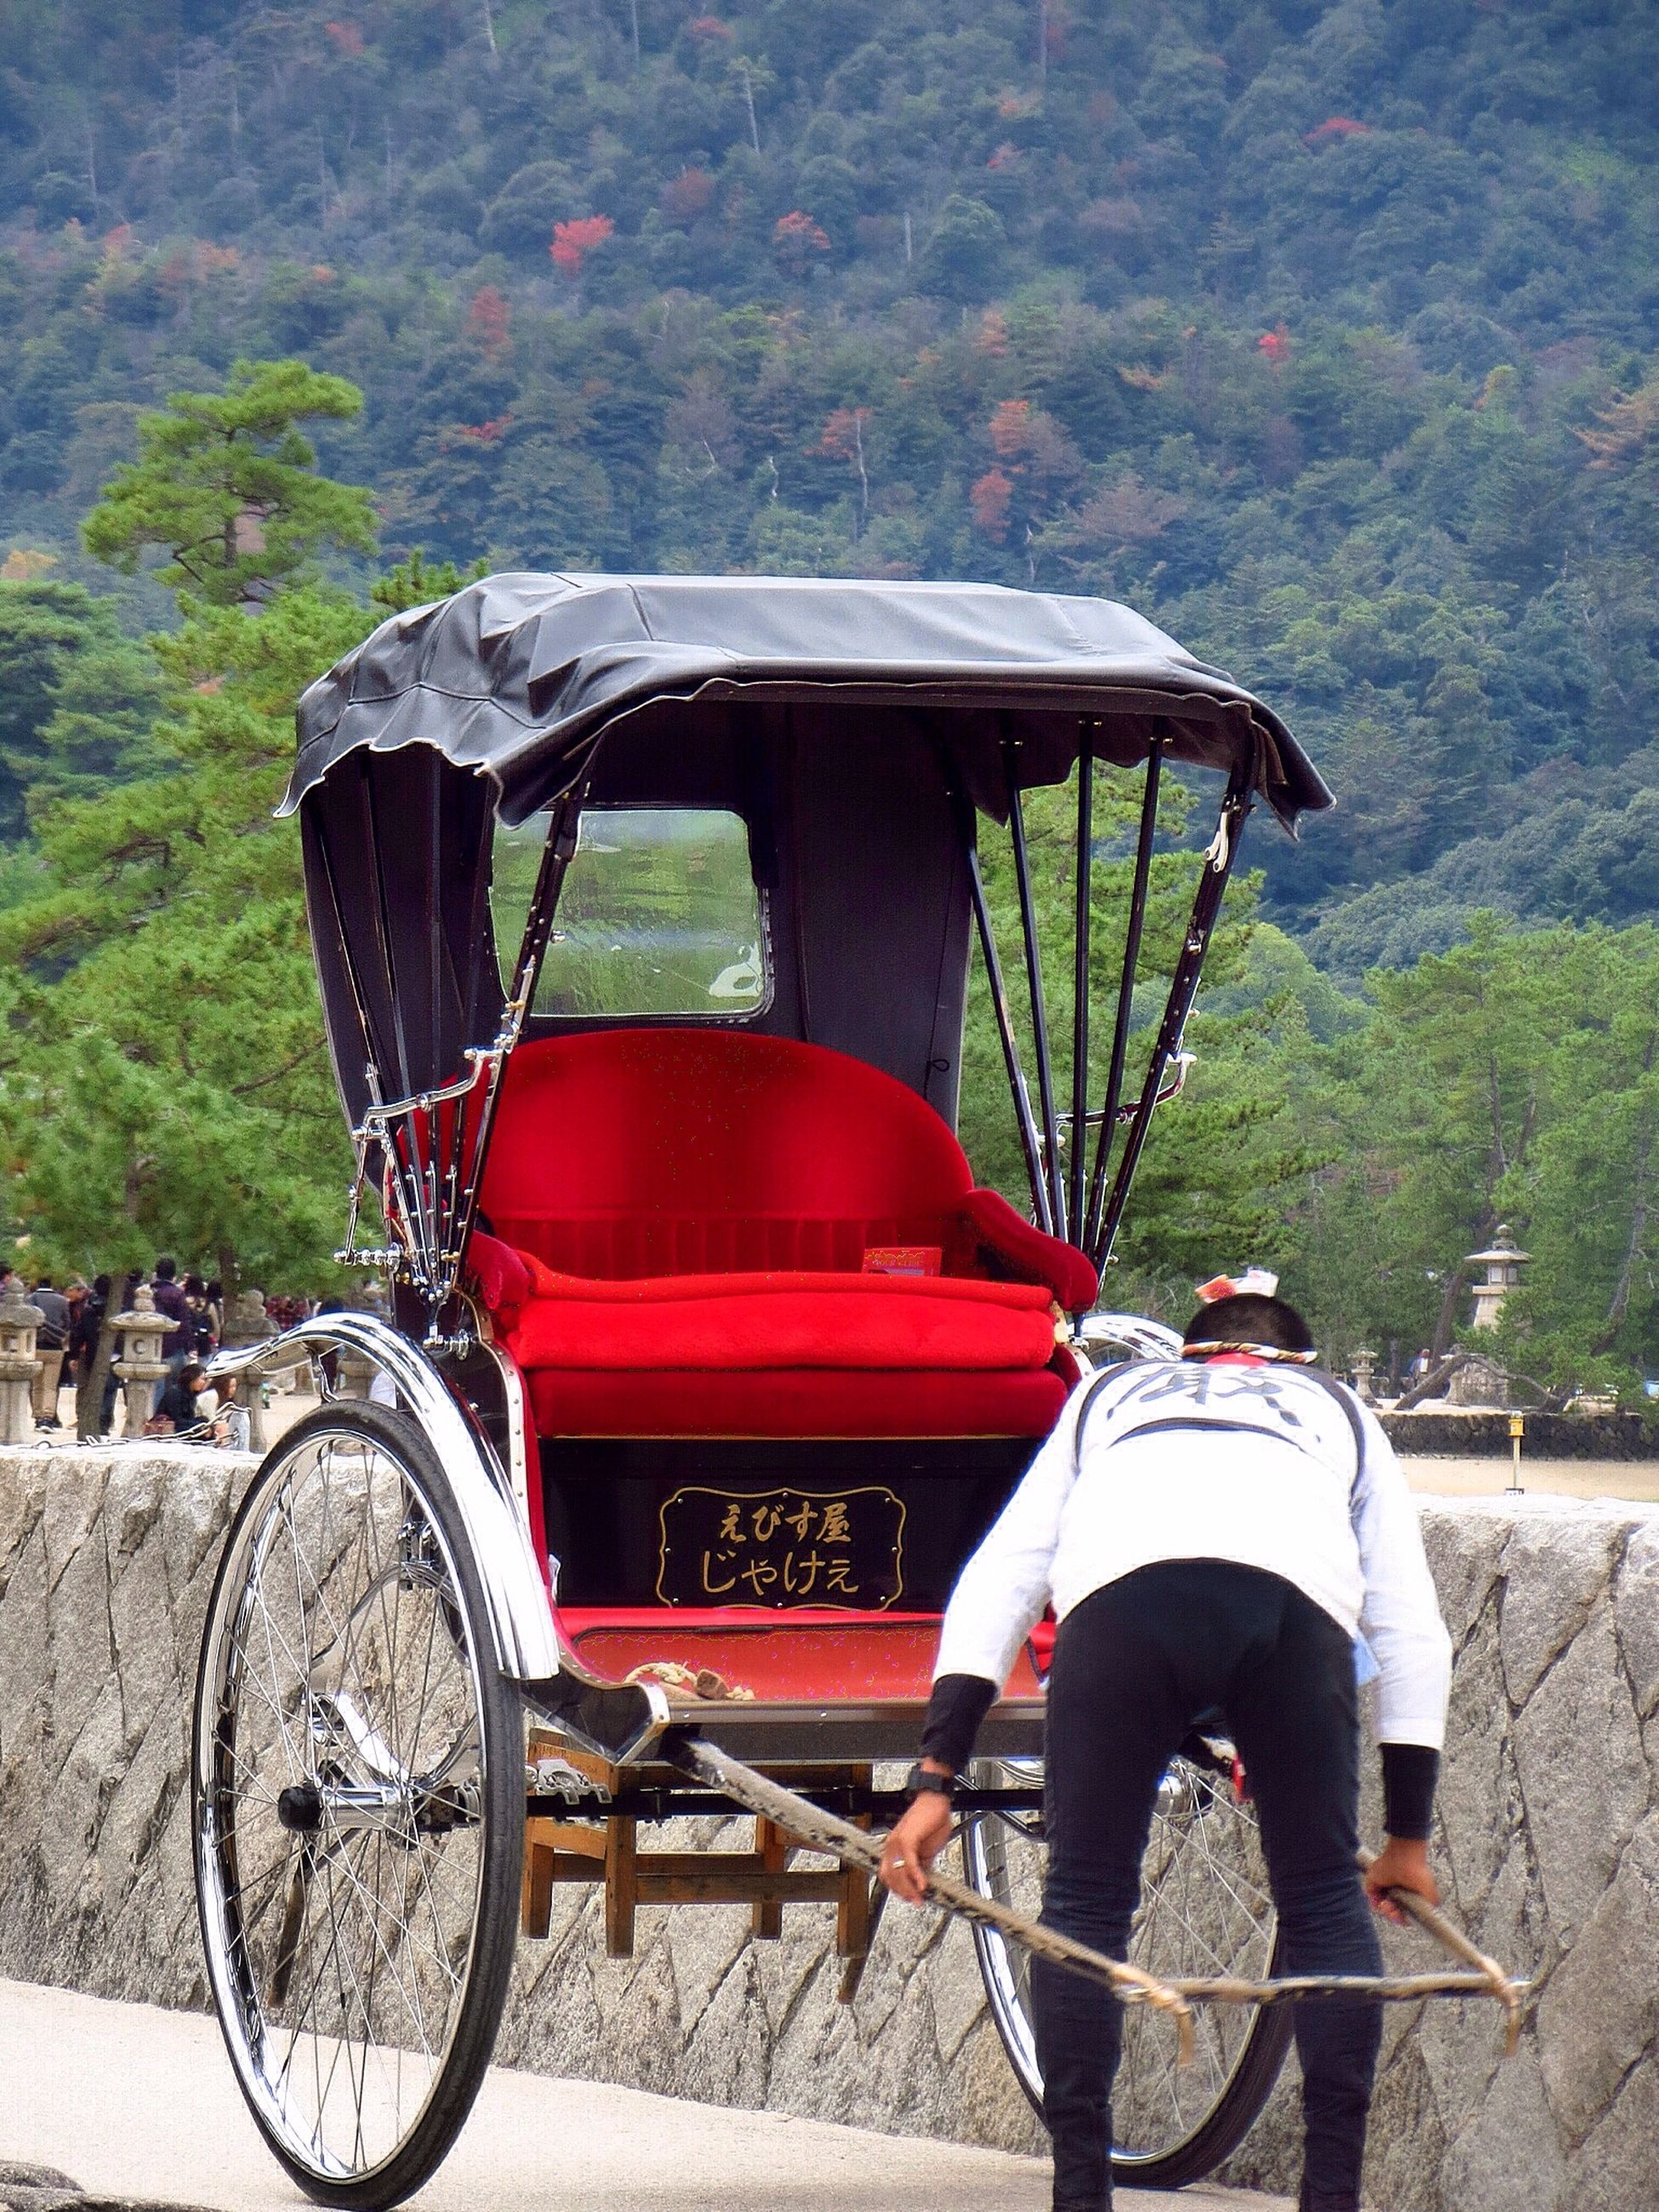 transportation, mode of transport, land vehicle, bicycle, stationary, travel, car, parked, mountain, parking, road, riding, outdoors, street, day, tree, red, side view